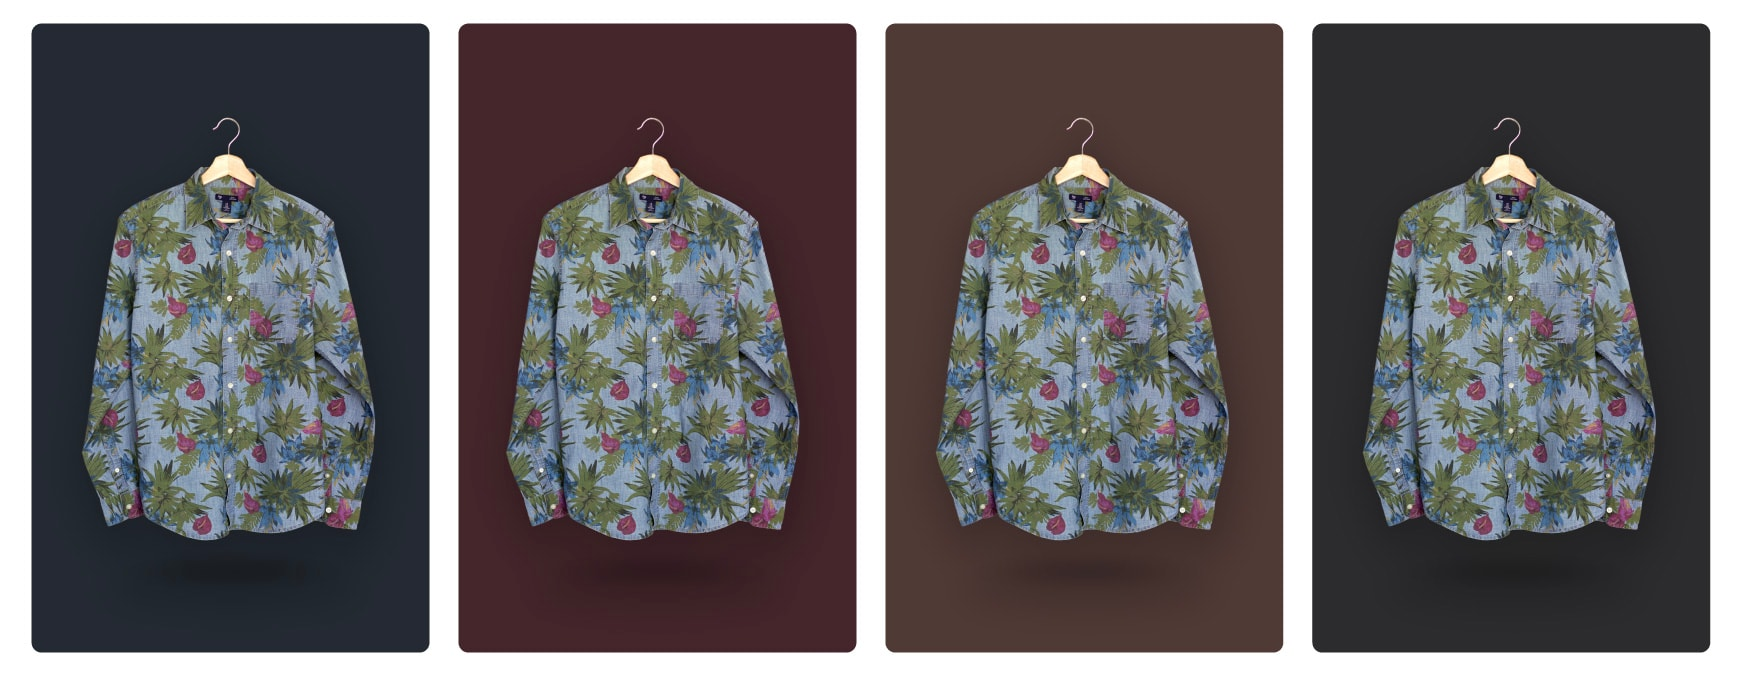 example of a shirt product photo with different dark colored backgrounds